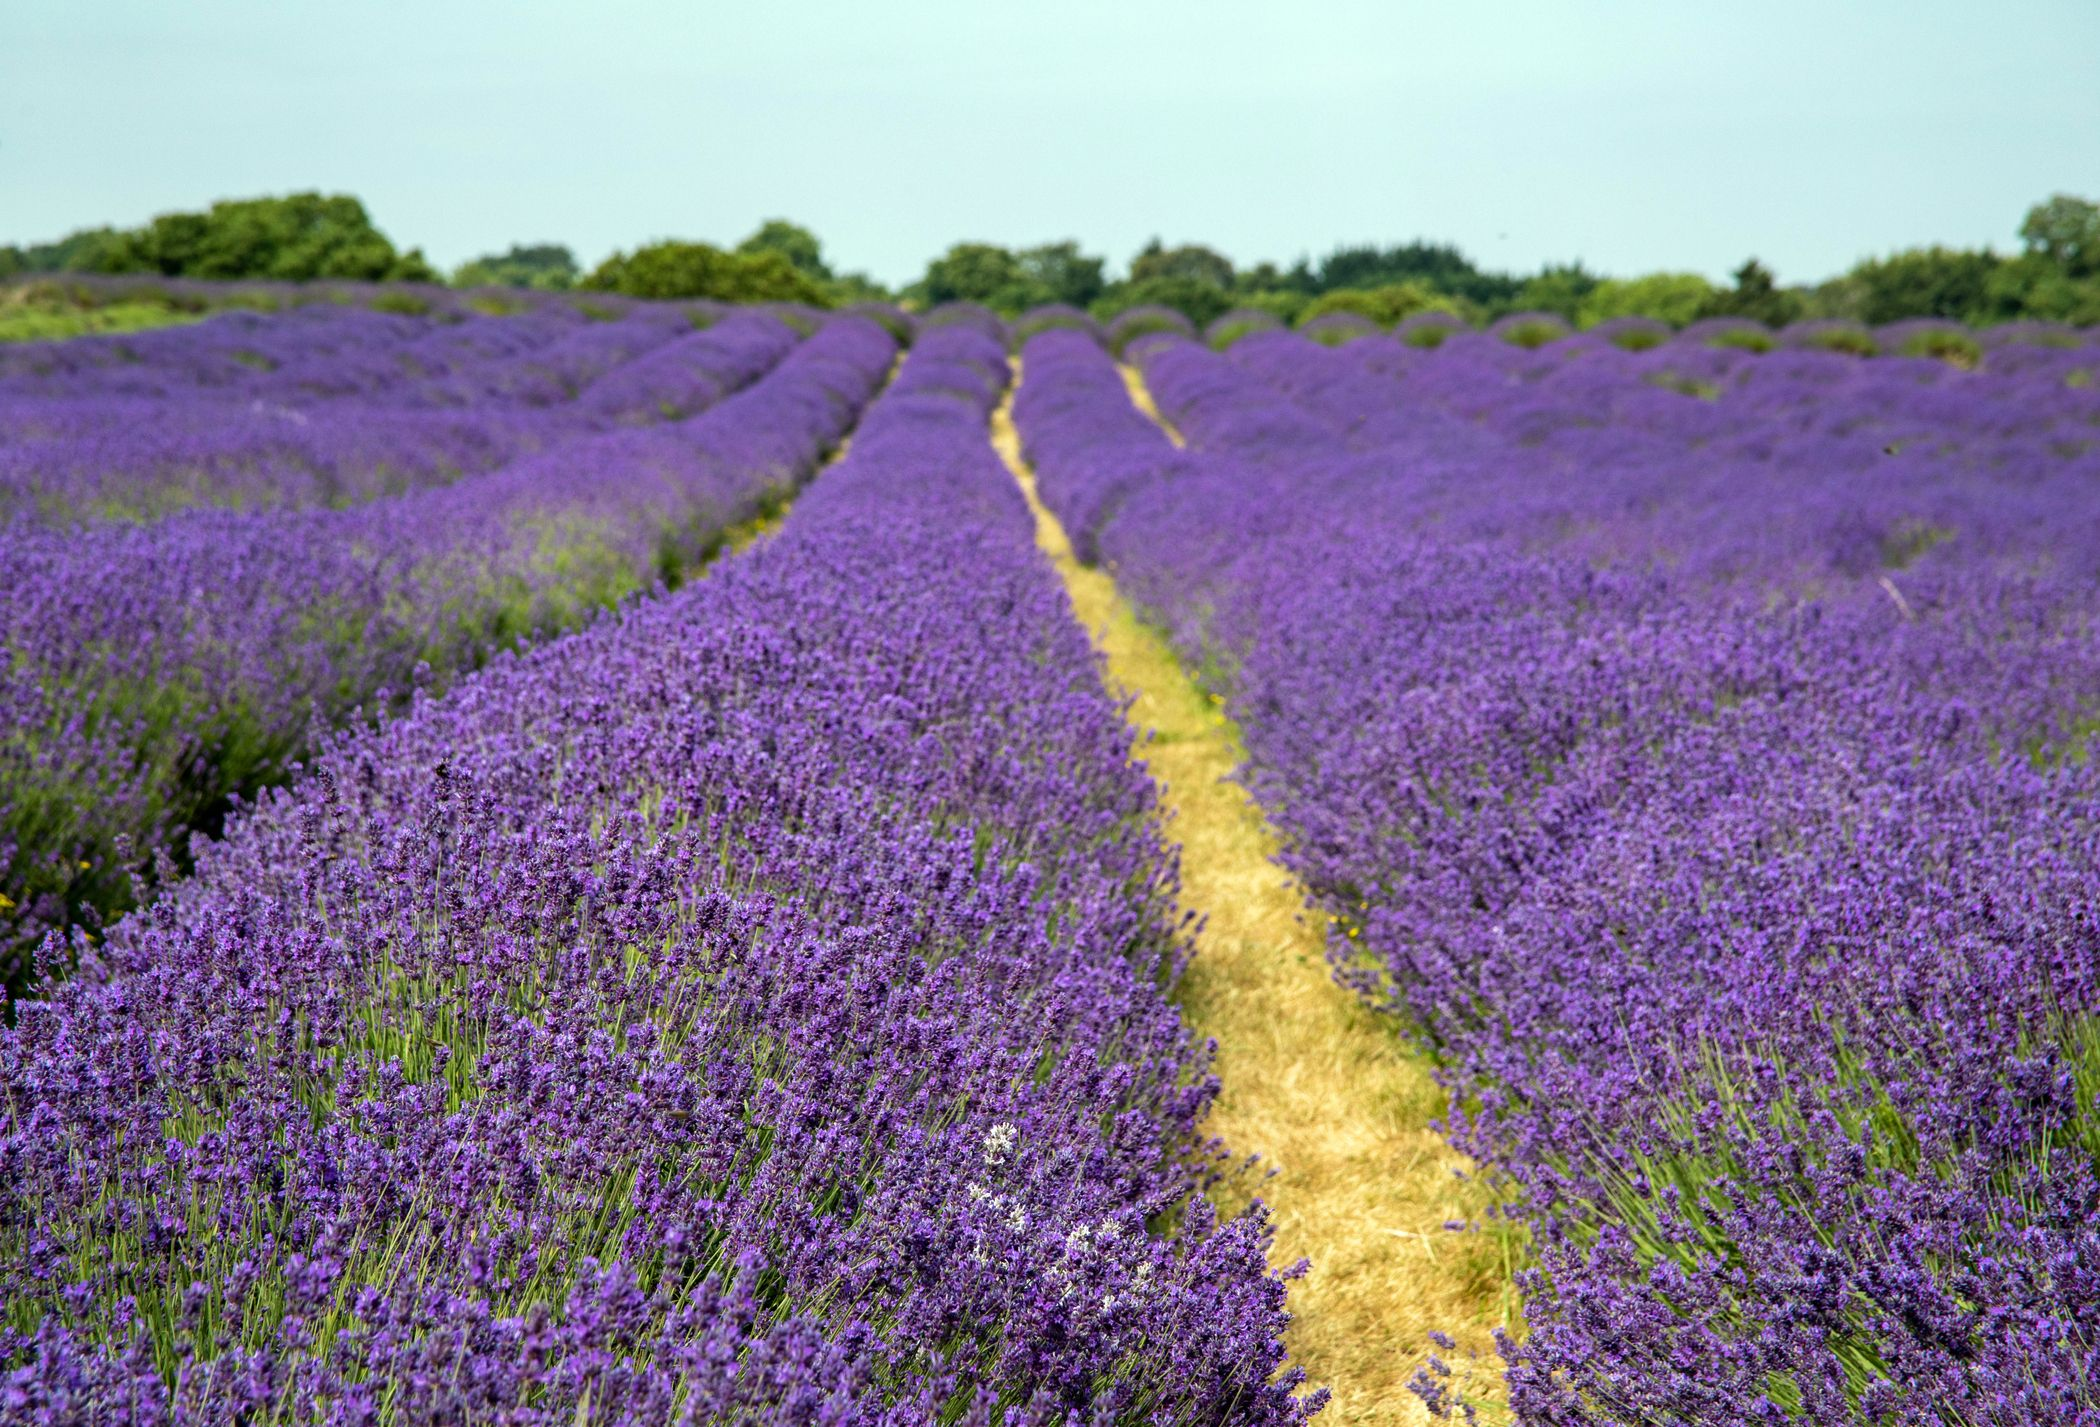 A Lavender farm in Surrey is asking tourists not to visit on weekends due to overcrowding